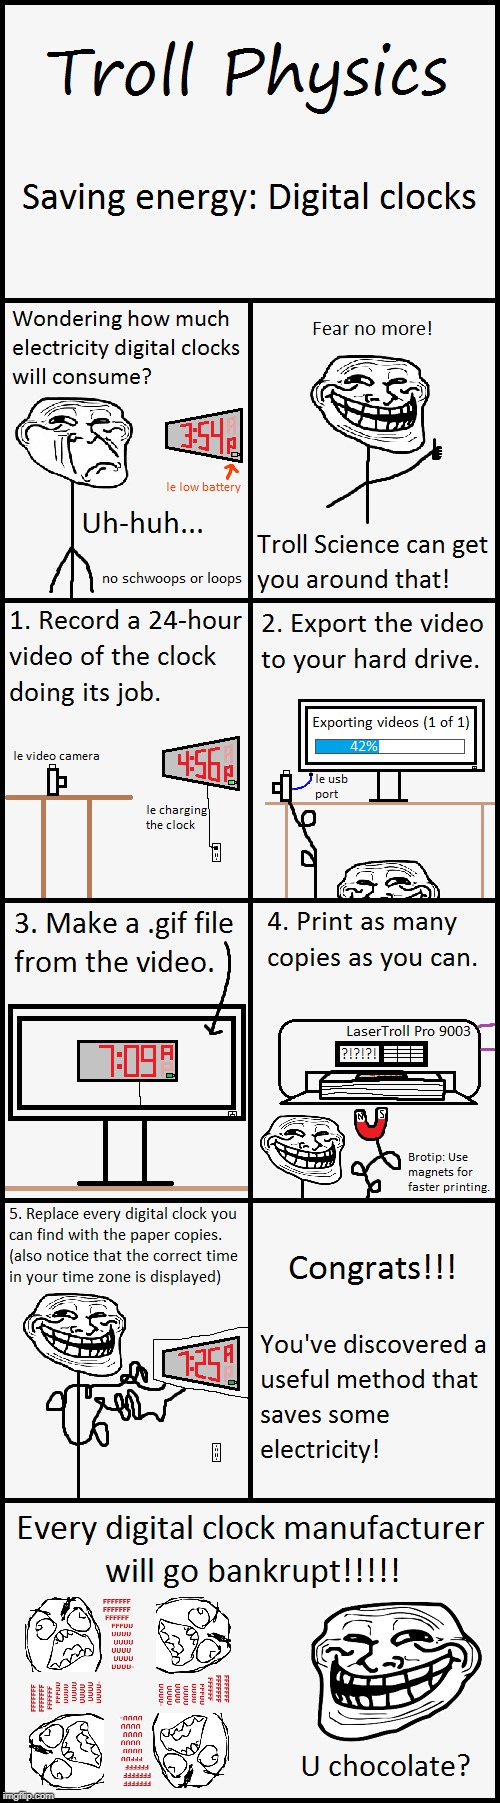 Troll Physics: Save Digital Energy | image tagged in memes,troll physics,troll science,clock,digital,save energy | made w/ Imgflip meme maker